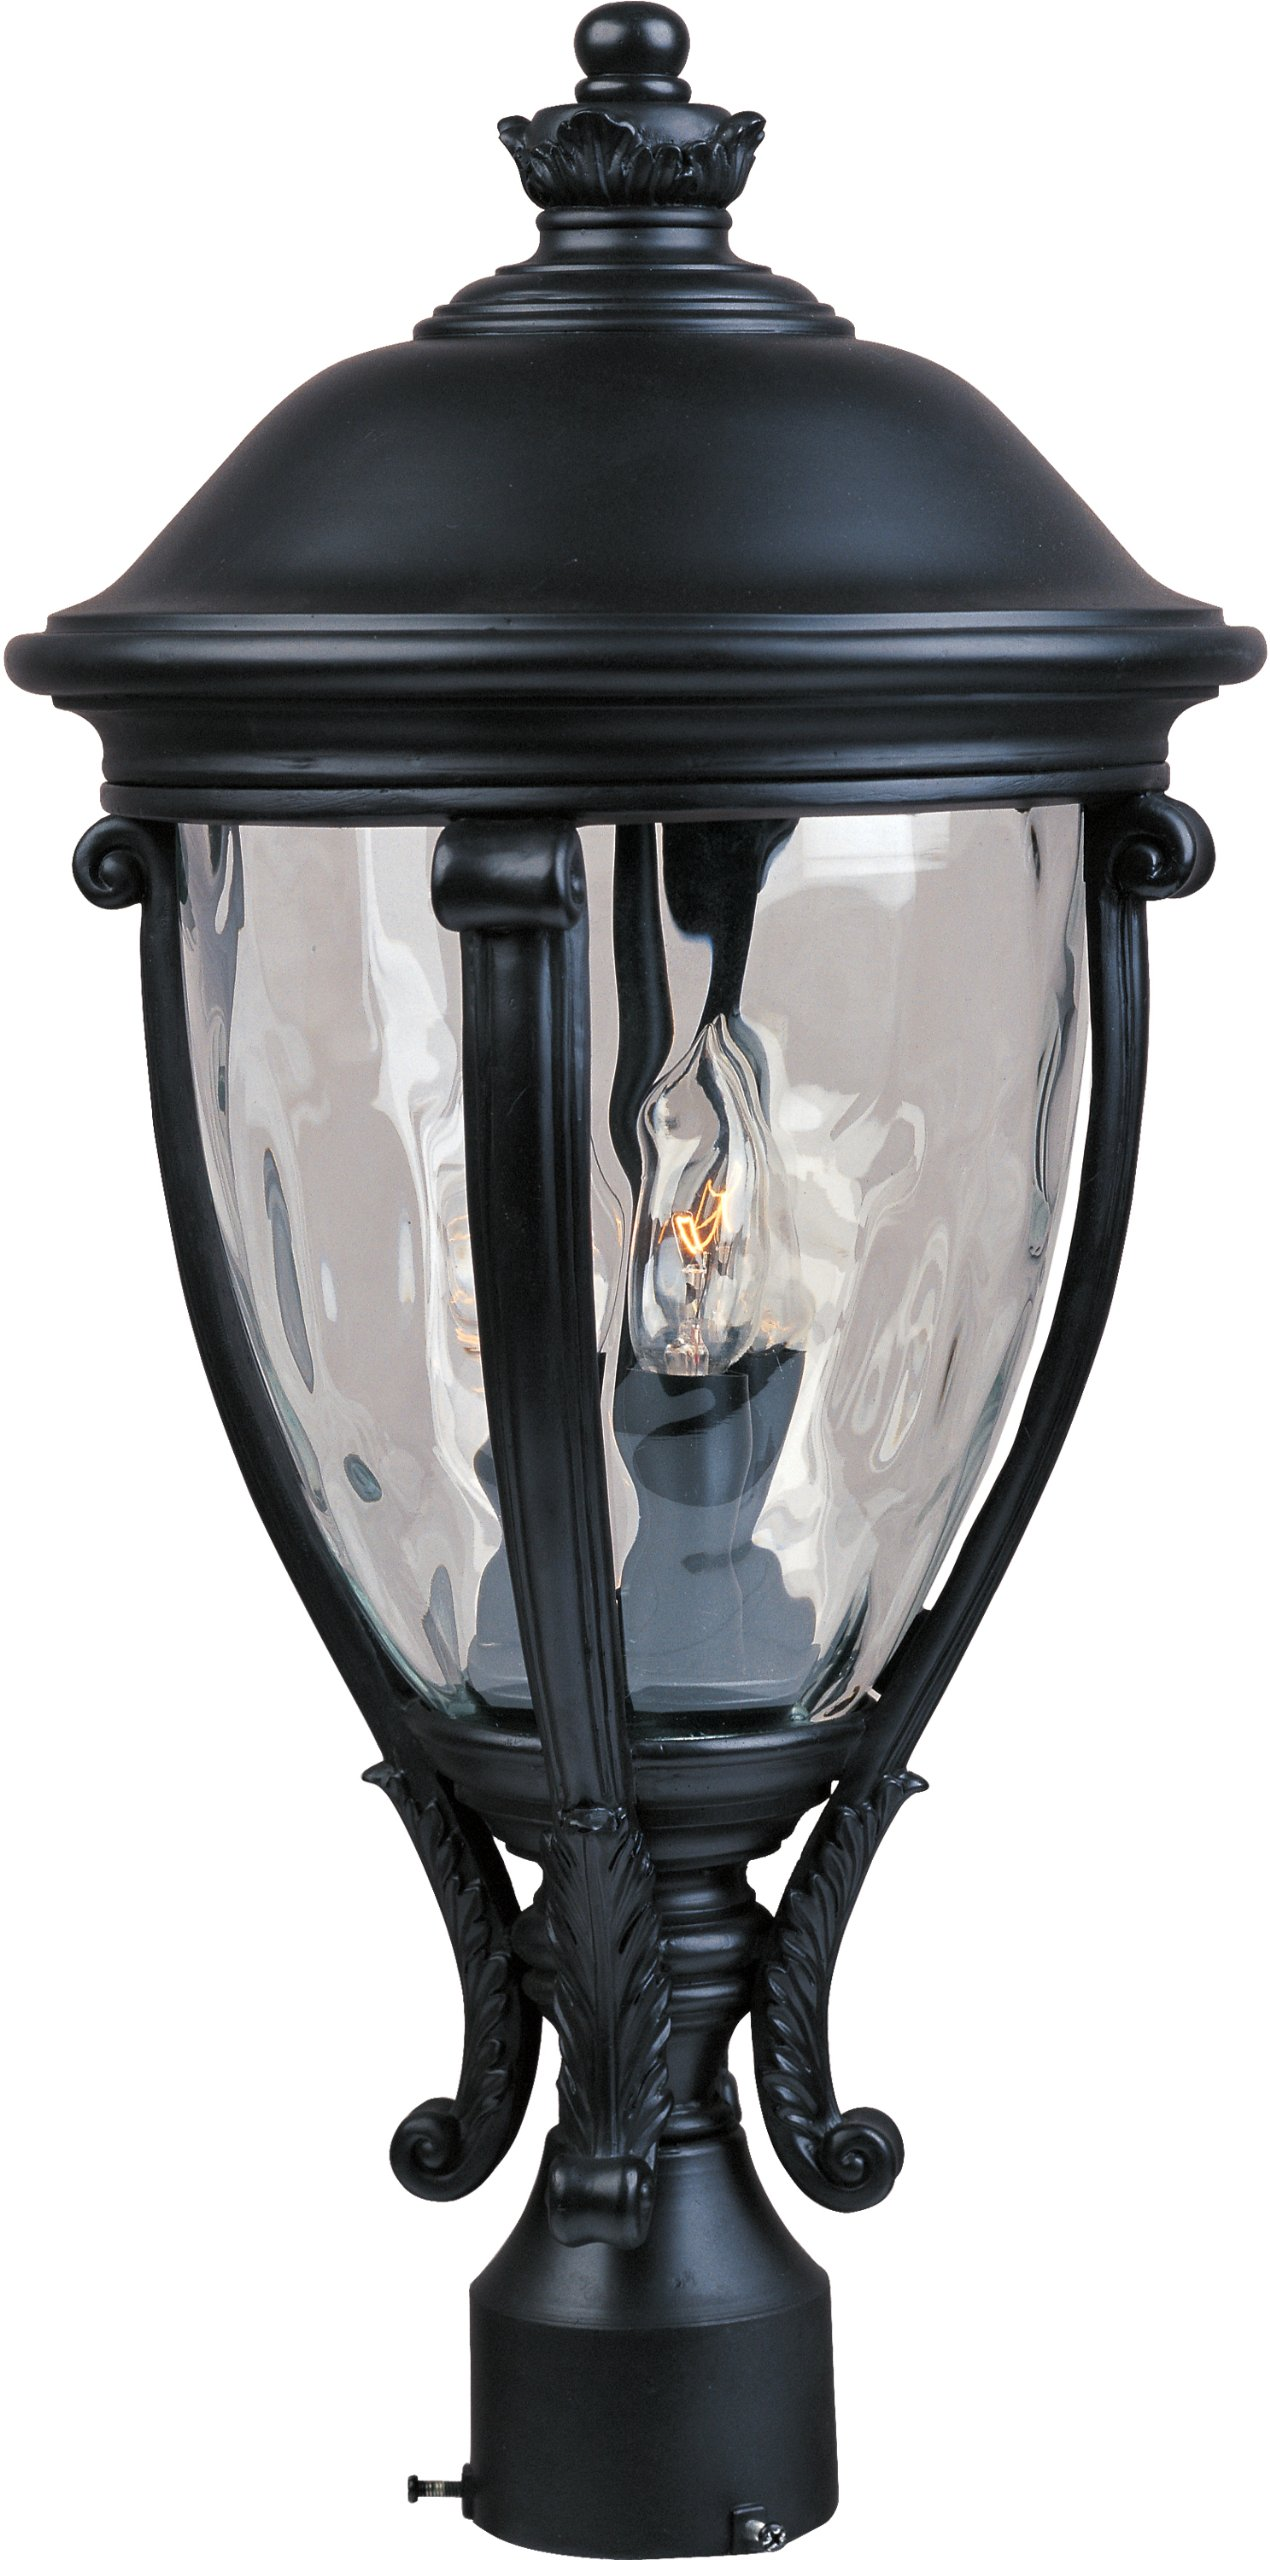 Maxim 41421WGBK Camden VX 3-Light Outdoor Pole/Post Lantern, Black Finish, Water Glass Glass, CA Incandescent Incandescent Bulb , 60W Max., Dry Safety Rating, Standard Dimmable, Fabric Shade Material, Rated Lumens